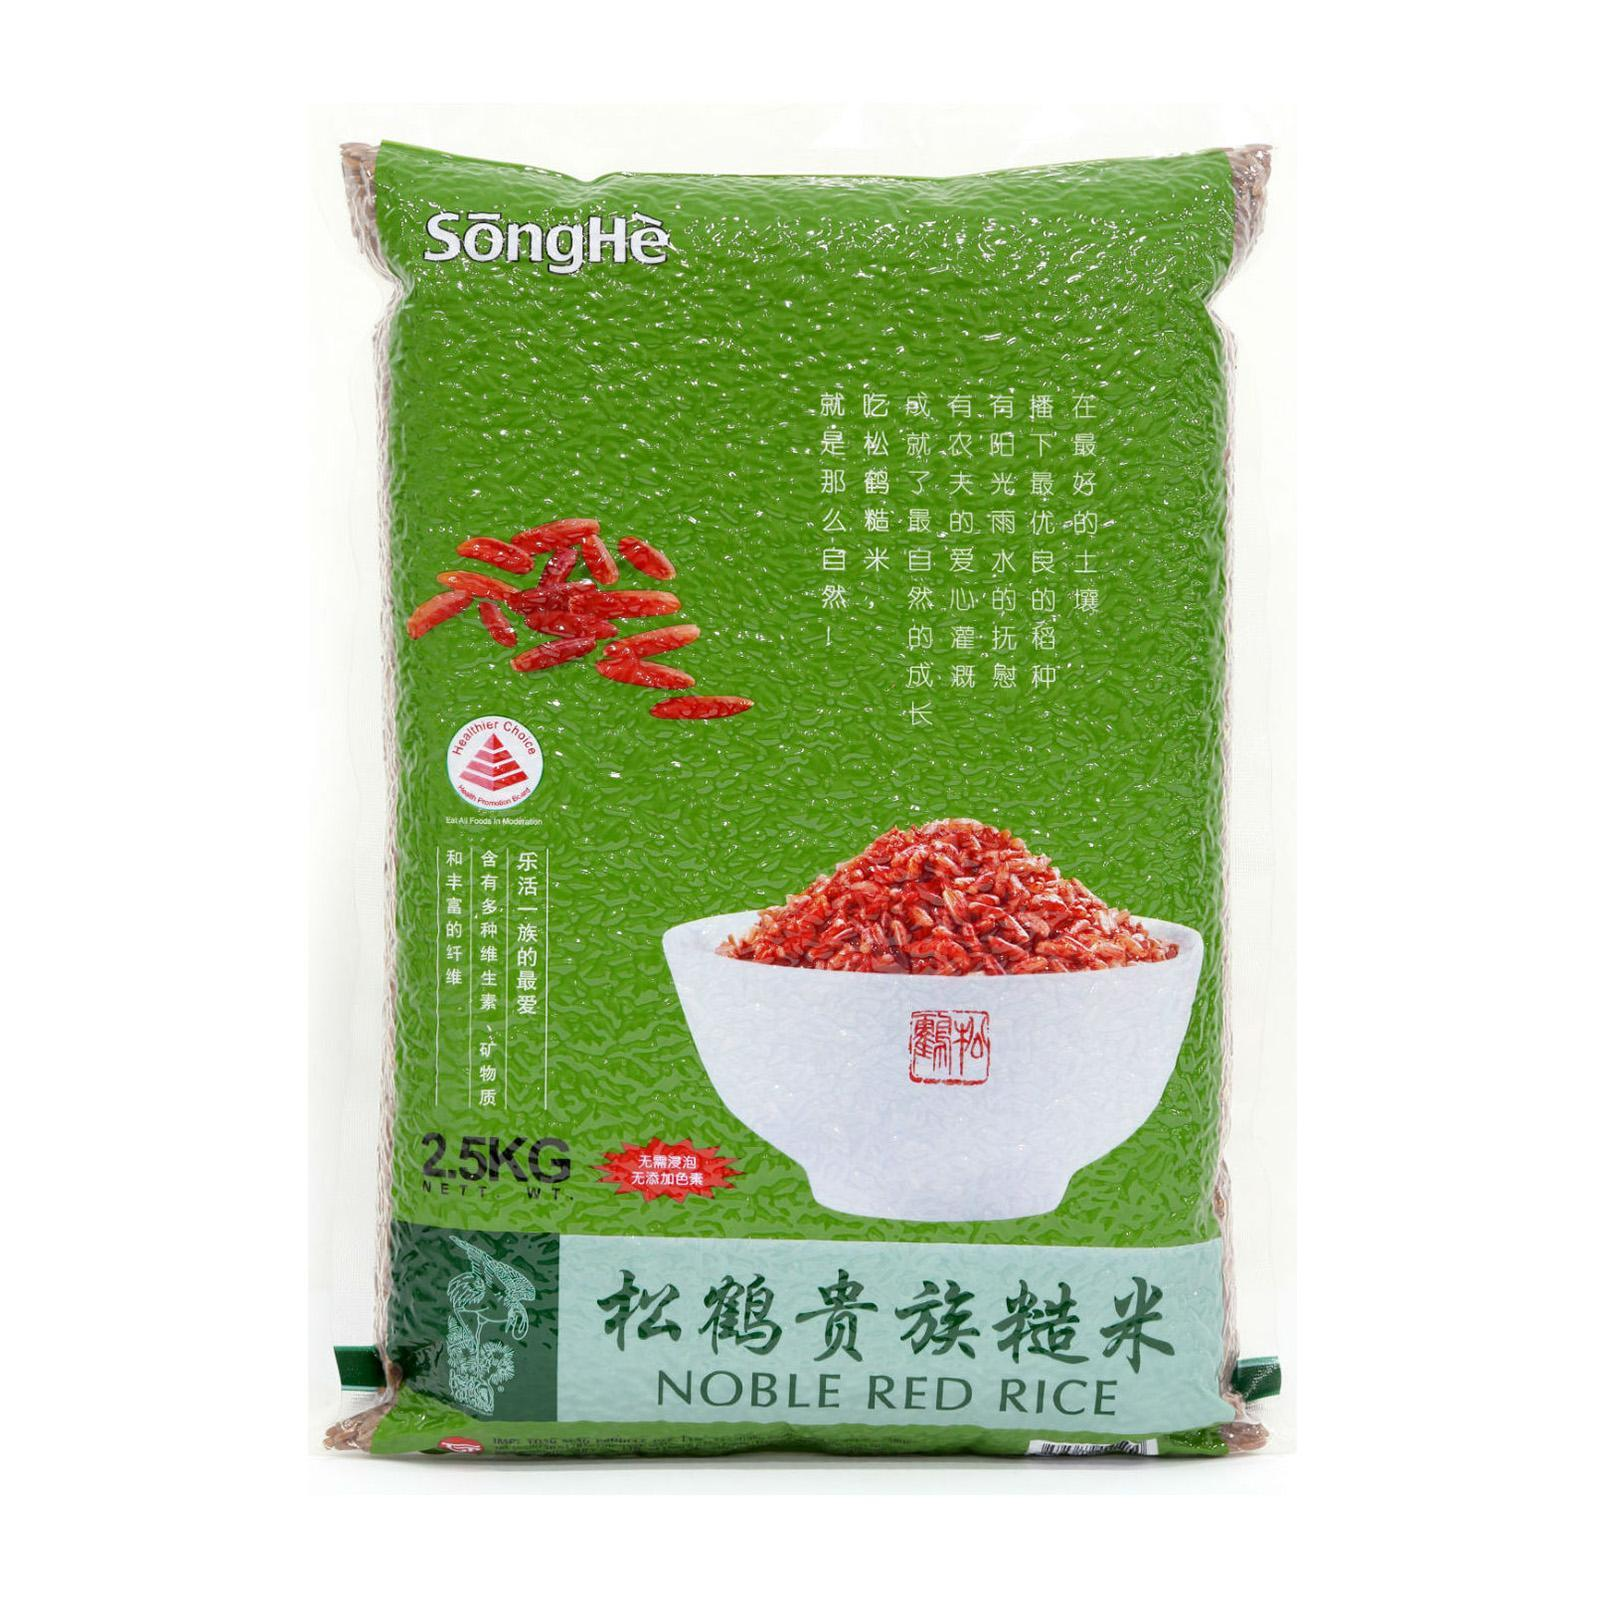 SongHe Noble Red Rice 2.5Kg